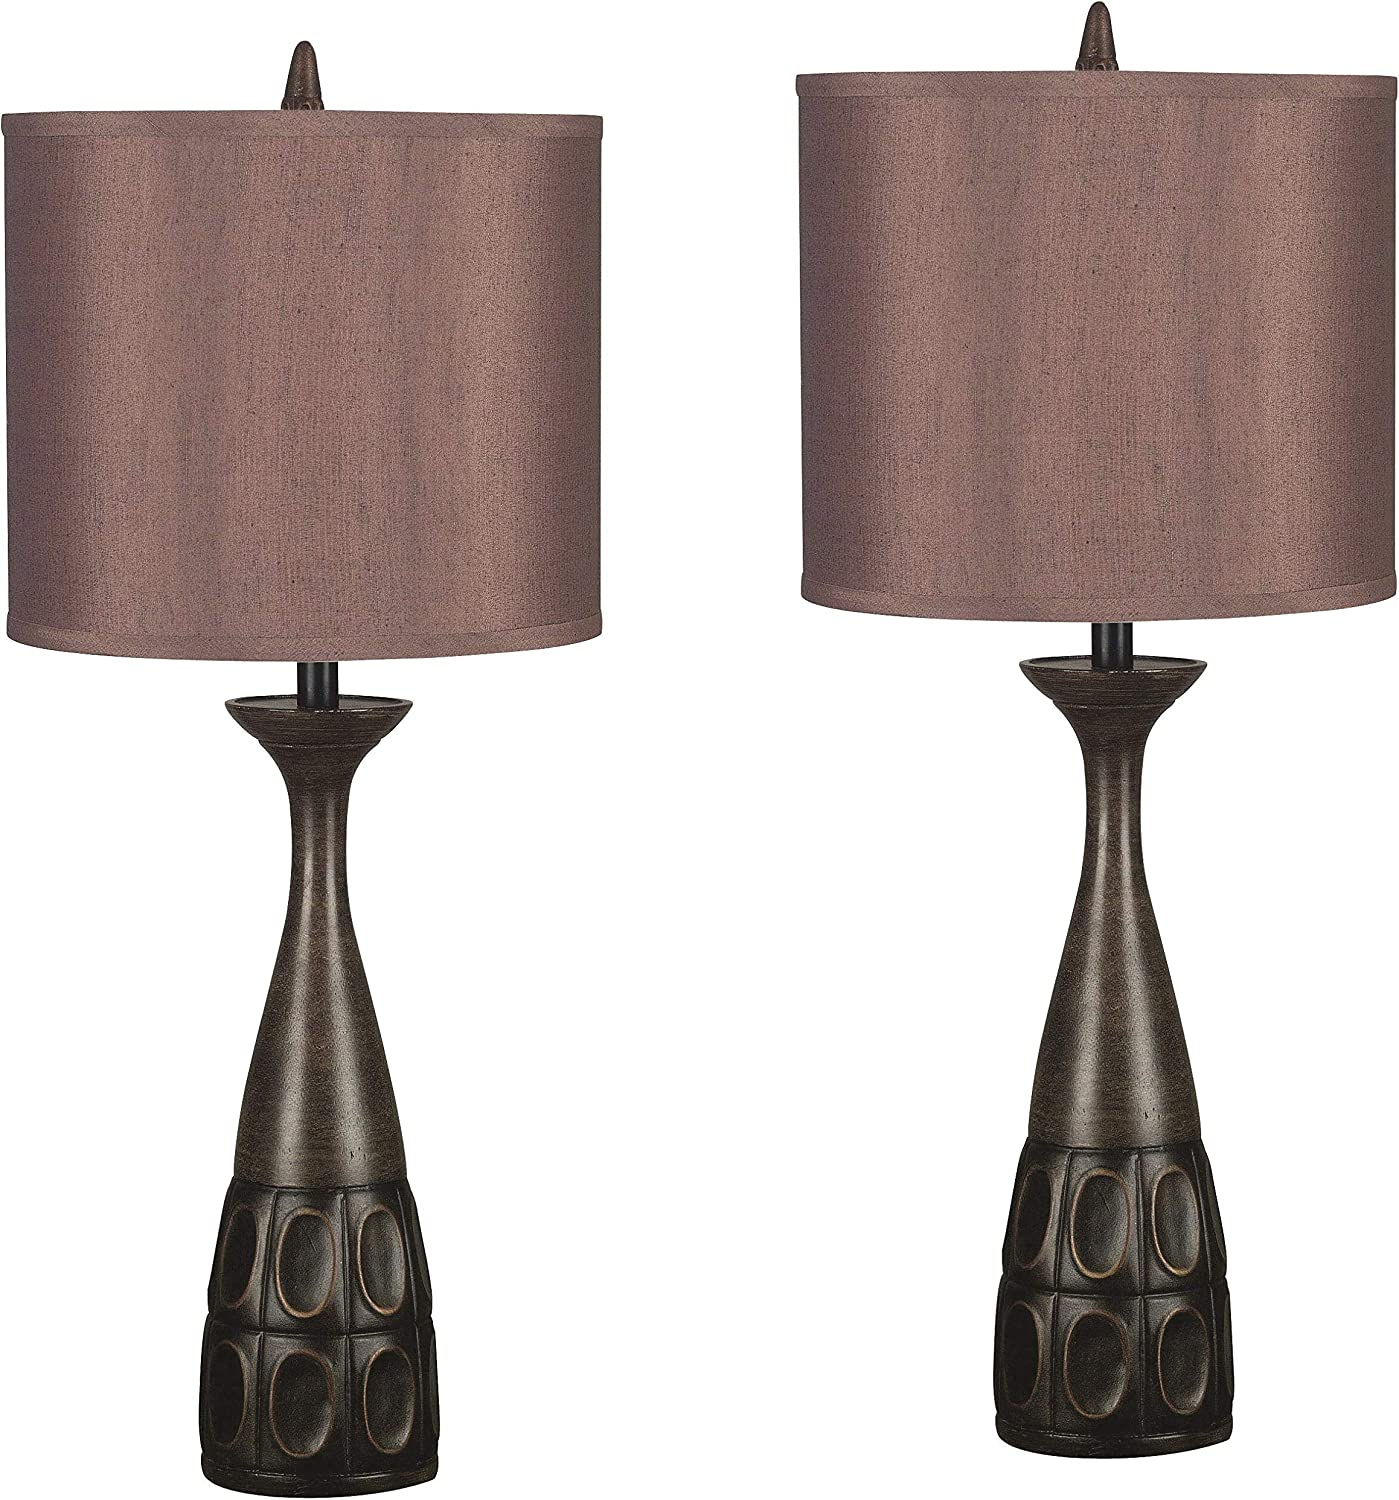 Kenroy Home 21072MBRZ Jules 2 Pack Table lamp, Mahogany Bronze Finish